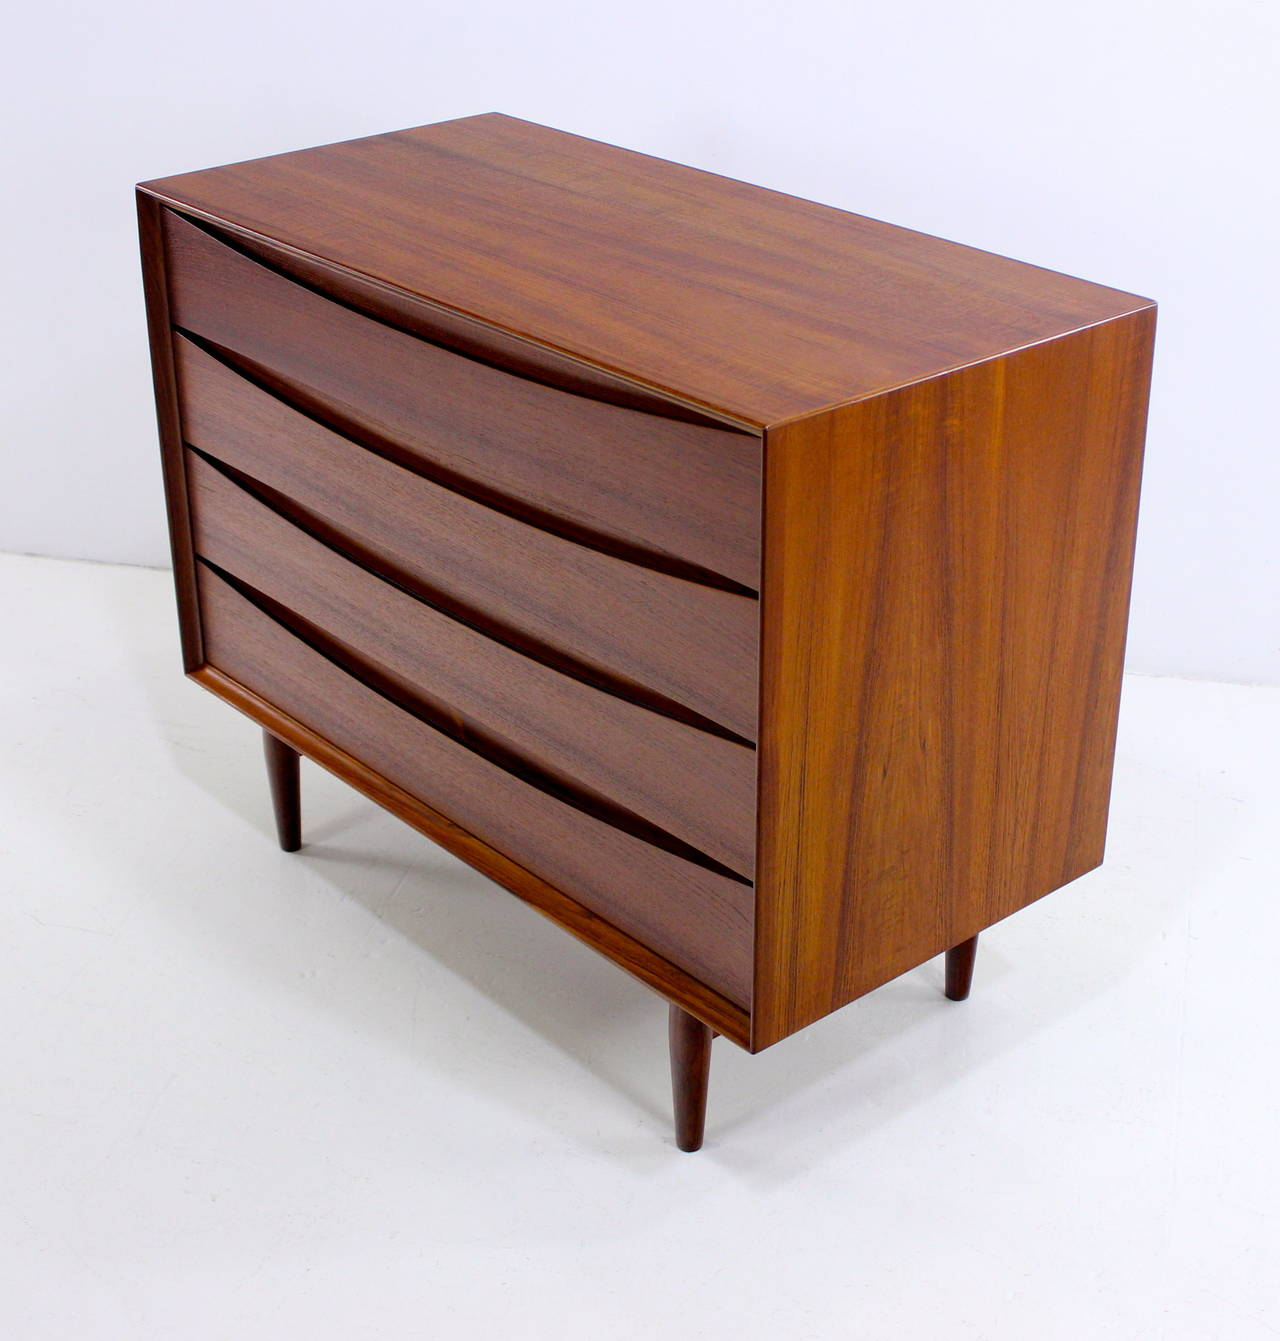 danish modern teak dresser or chest designed by arne vodder at 1stdibs. Black Bedroom Furniture Sets. Home Design Ideas